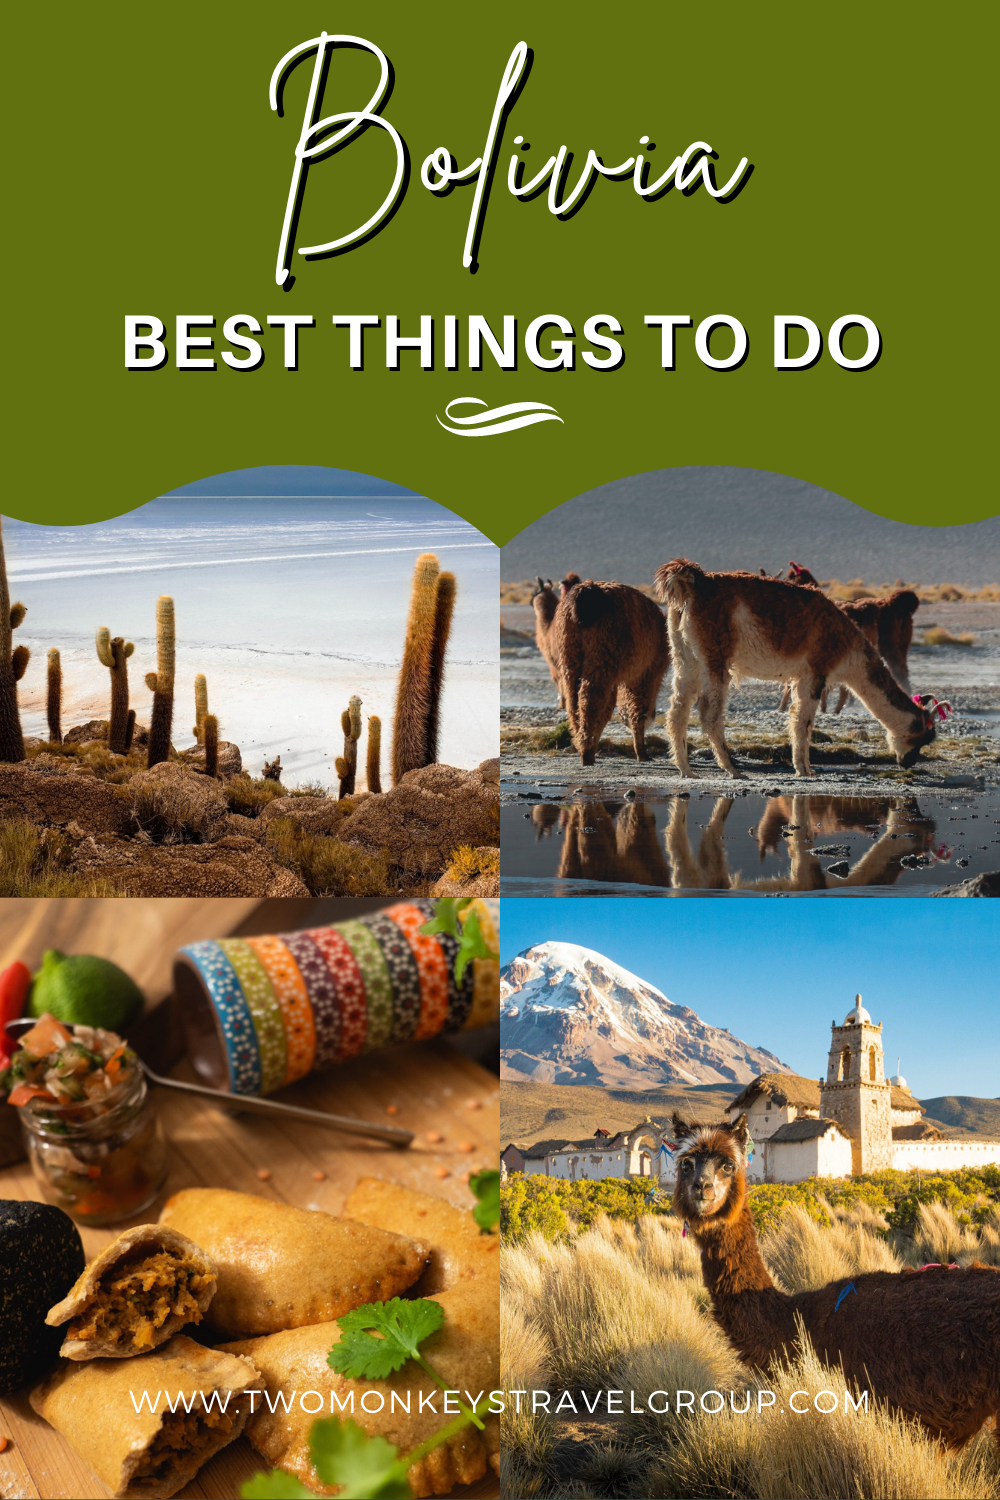 7 Reasons To Visit Bolivia Now The Best Things To Do in Bolivia